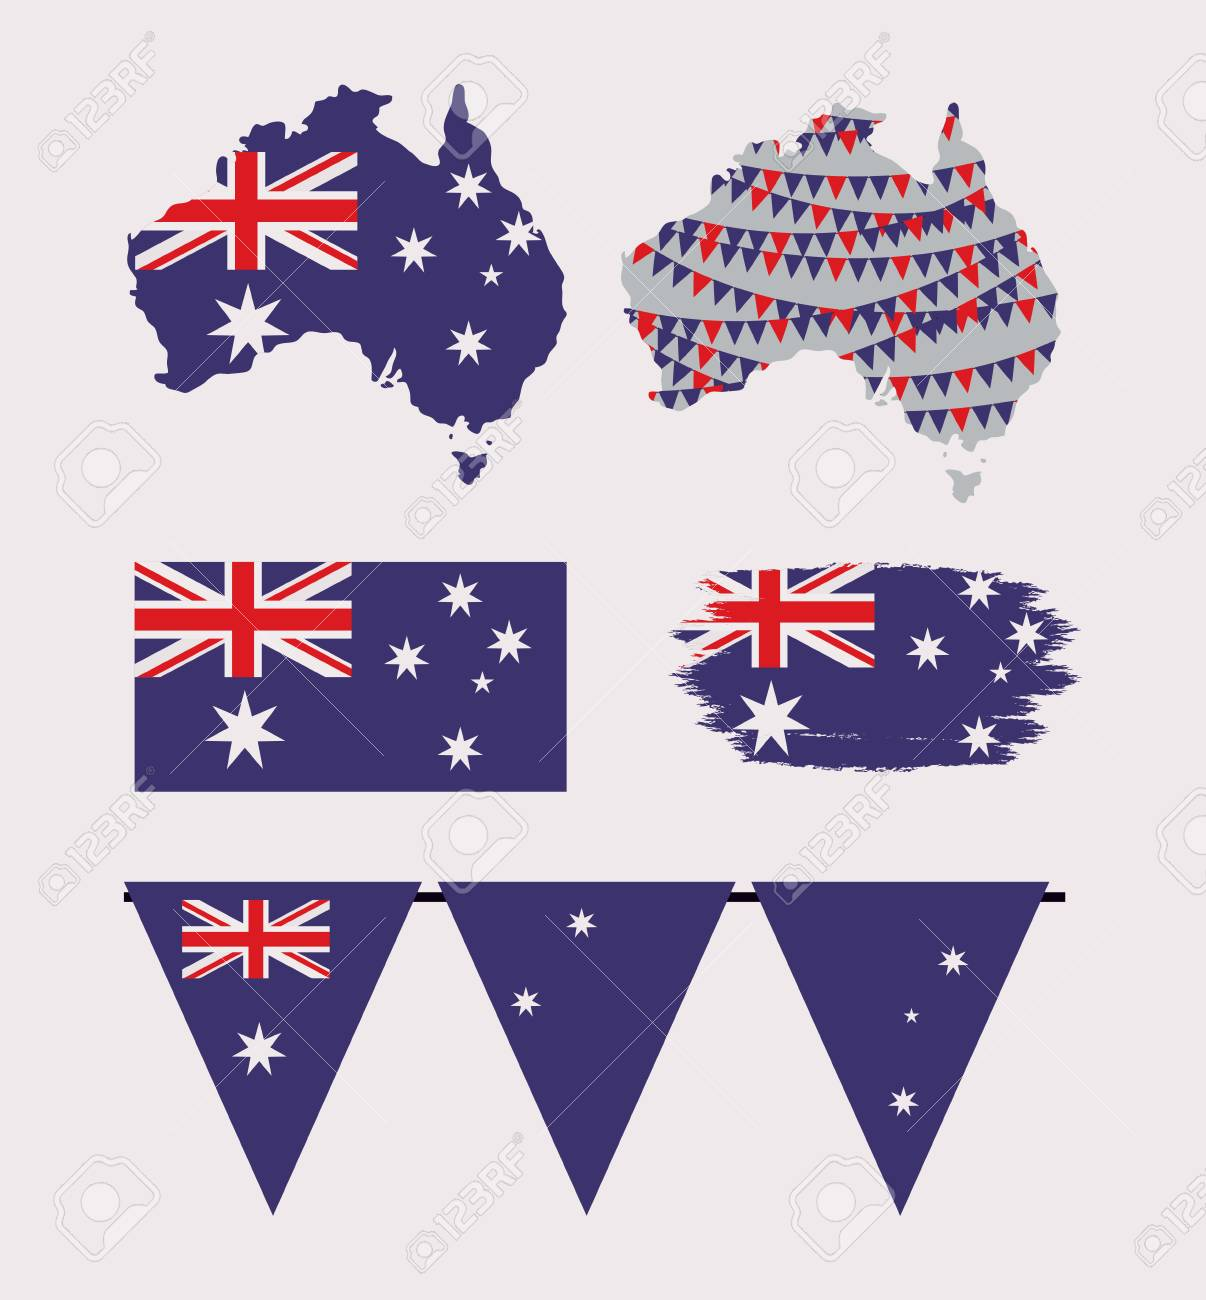 Australia Map With Flag.Icons Set Of Australia Day With Colorful Australian Maps Flags